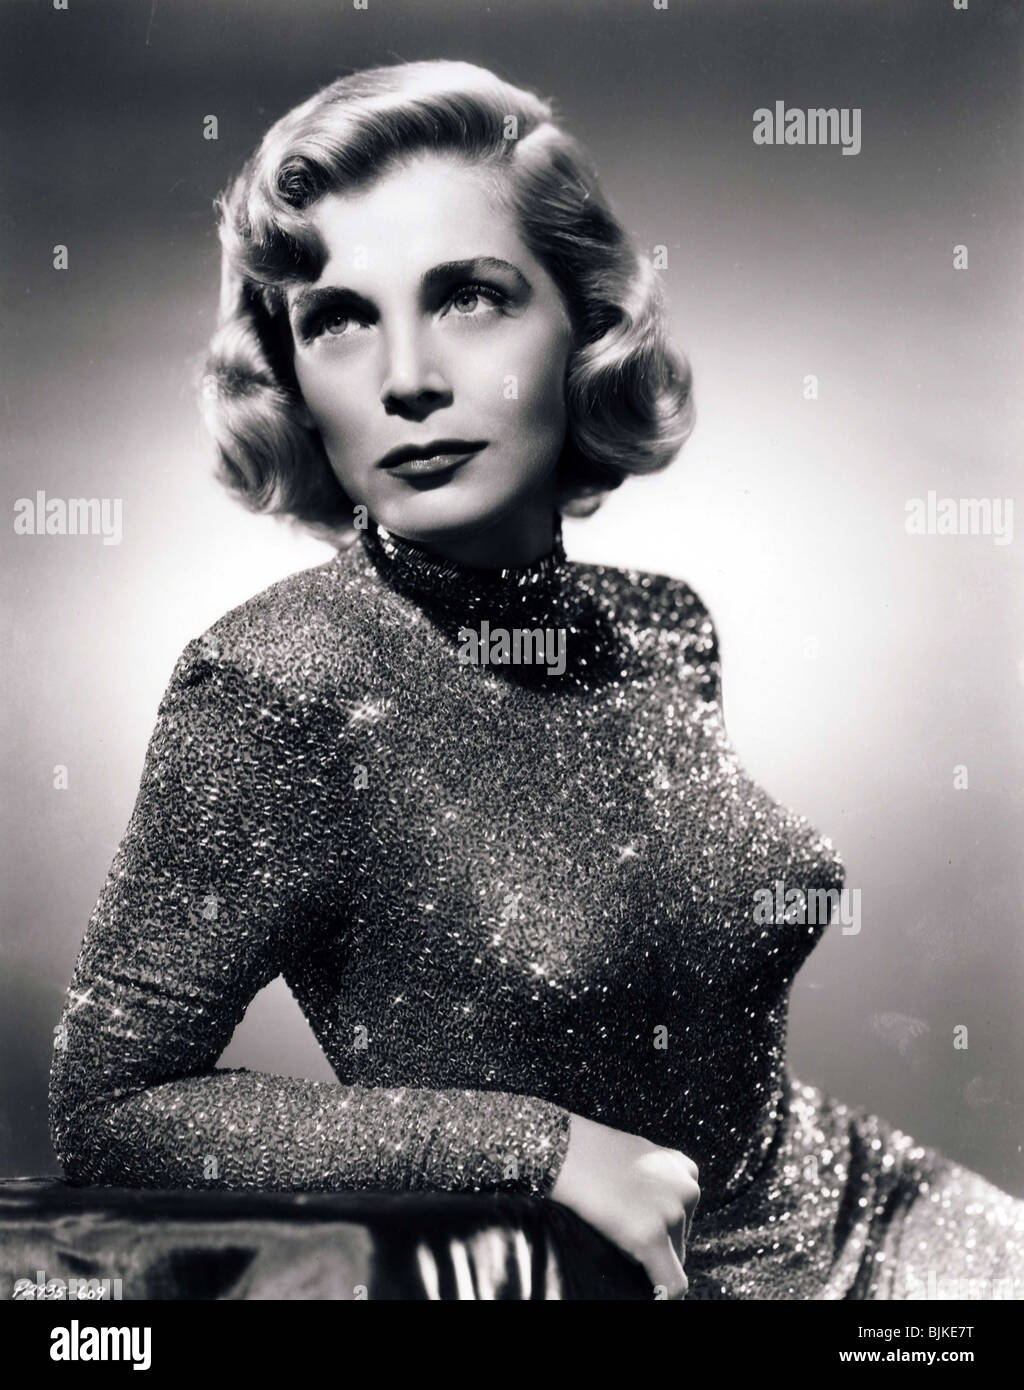 LIZABETH SCOTT (PORTRAIT) - Stock Image